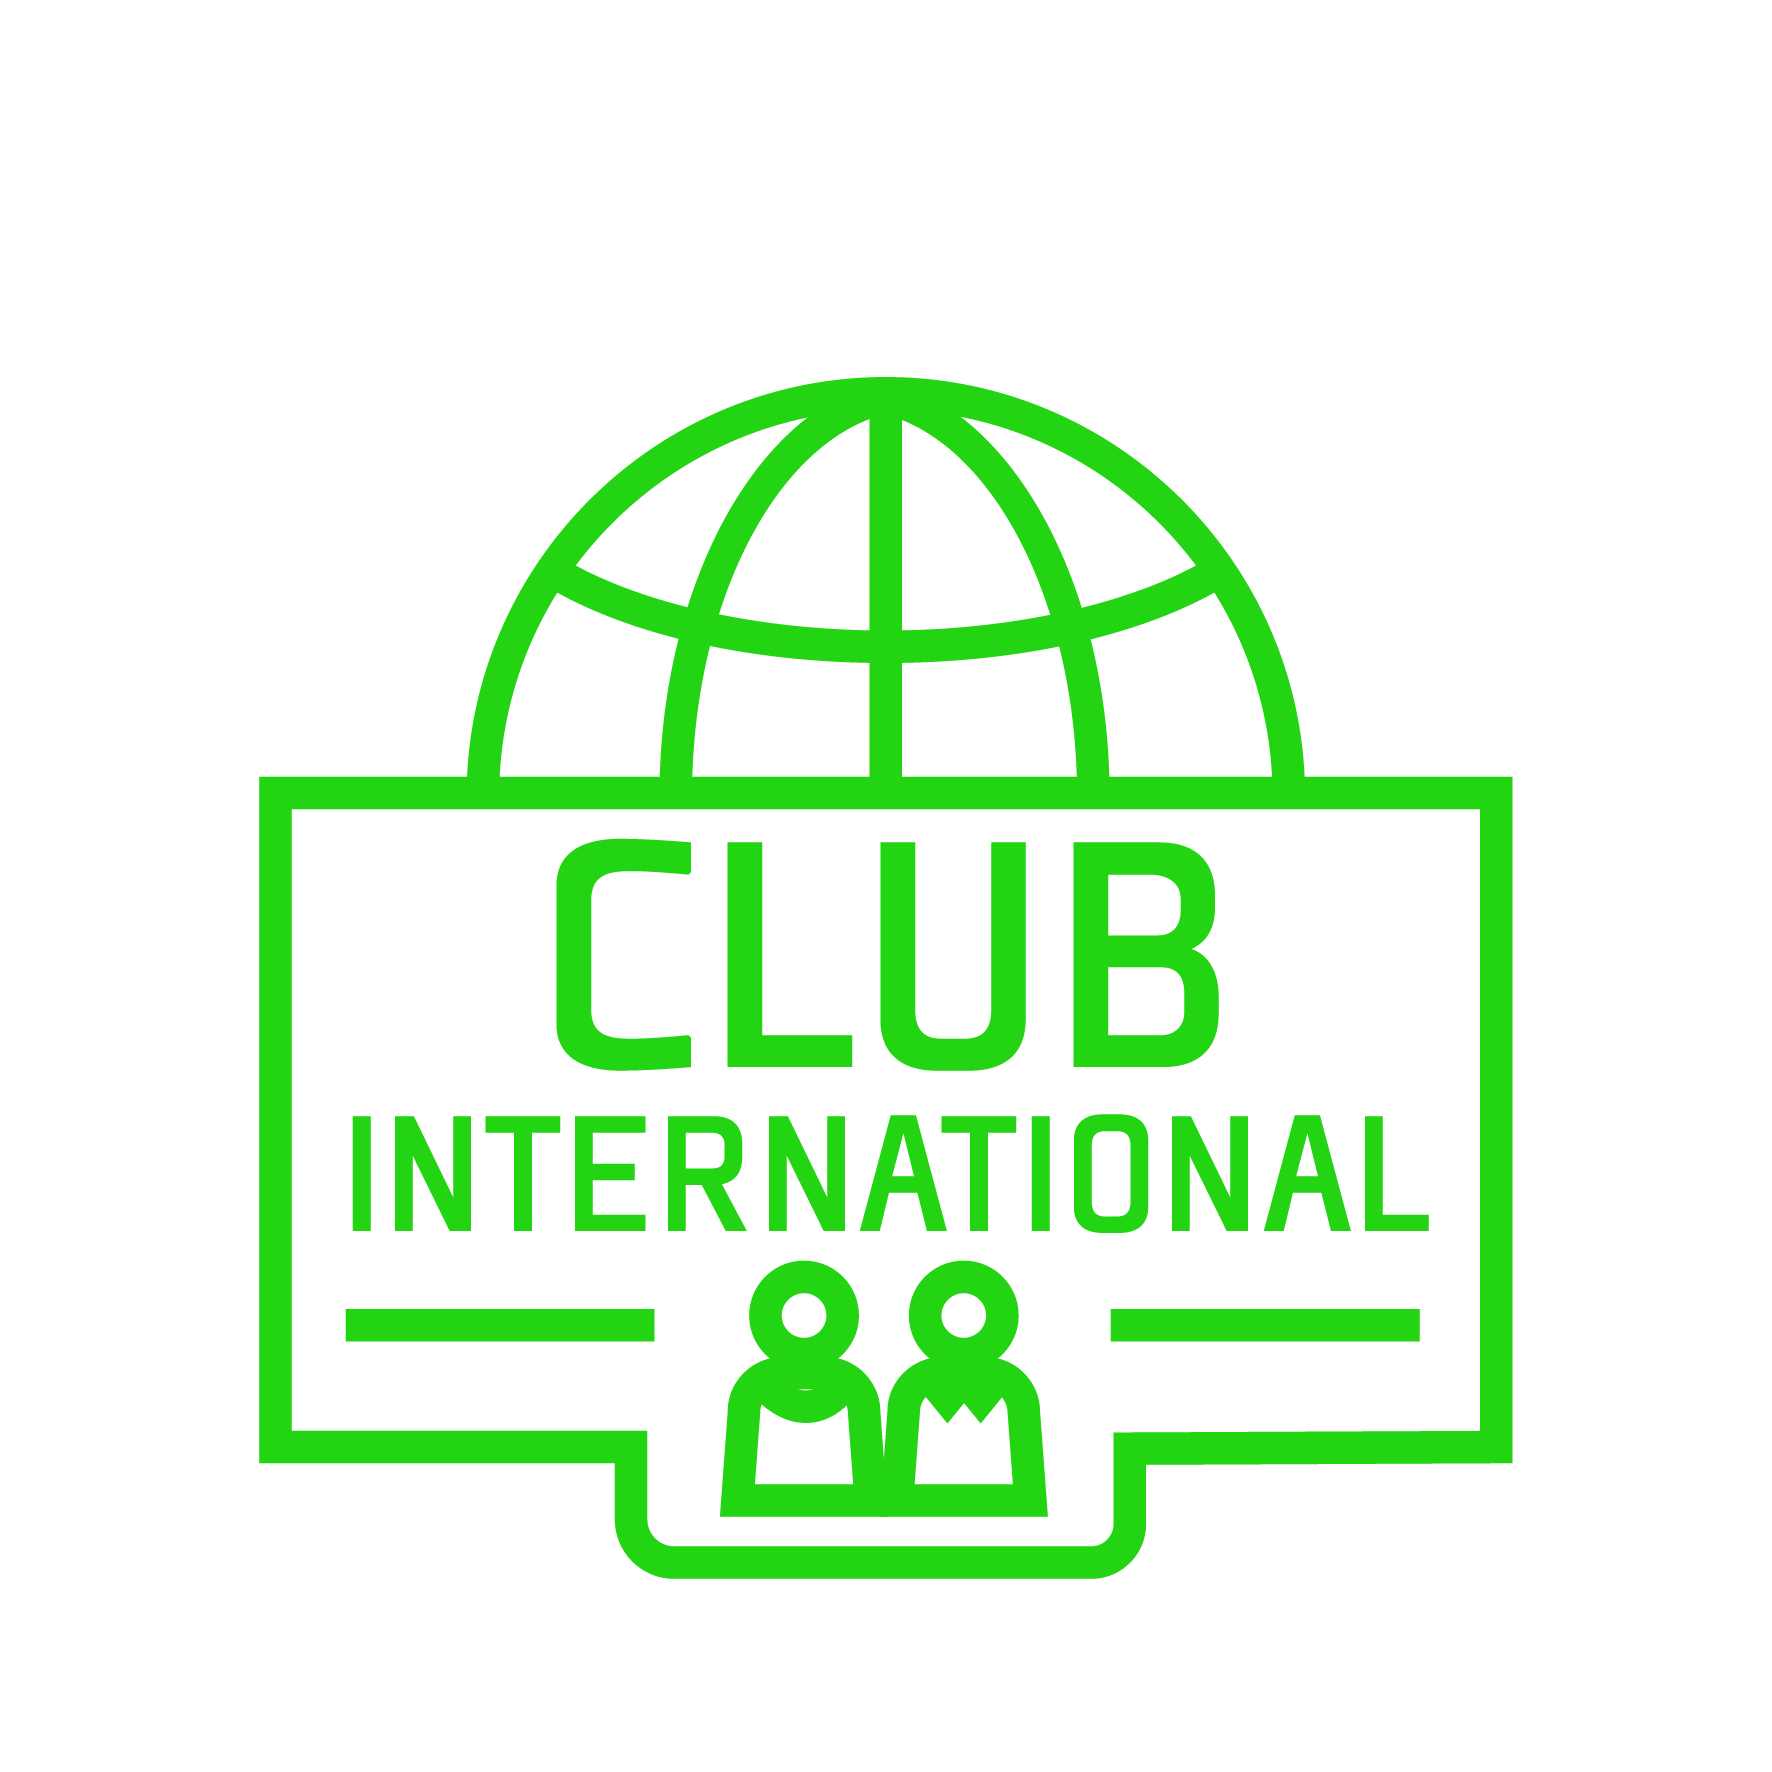 Club international SPACE